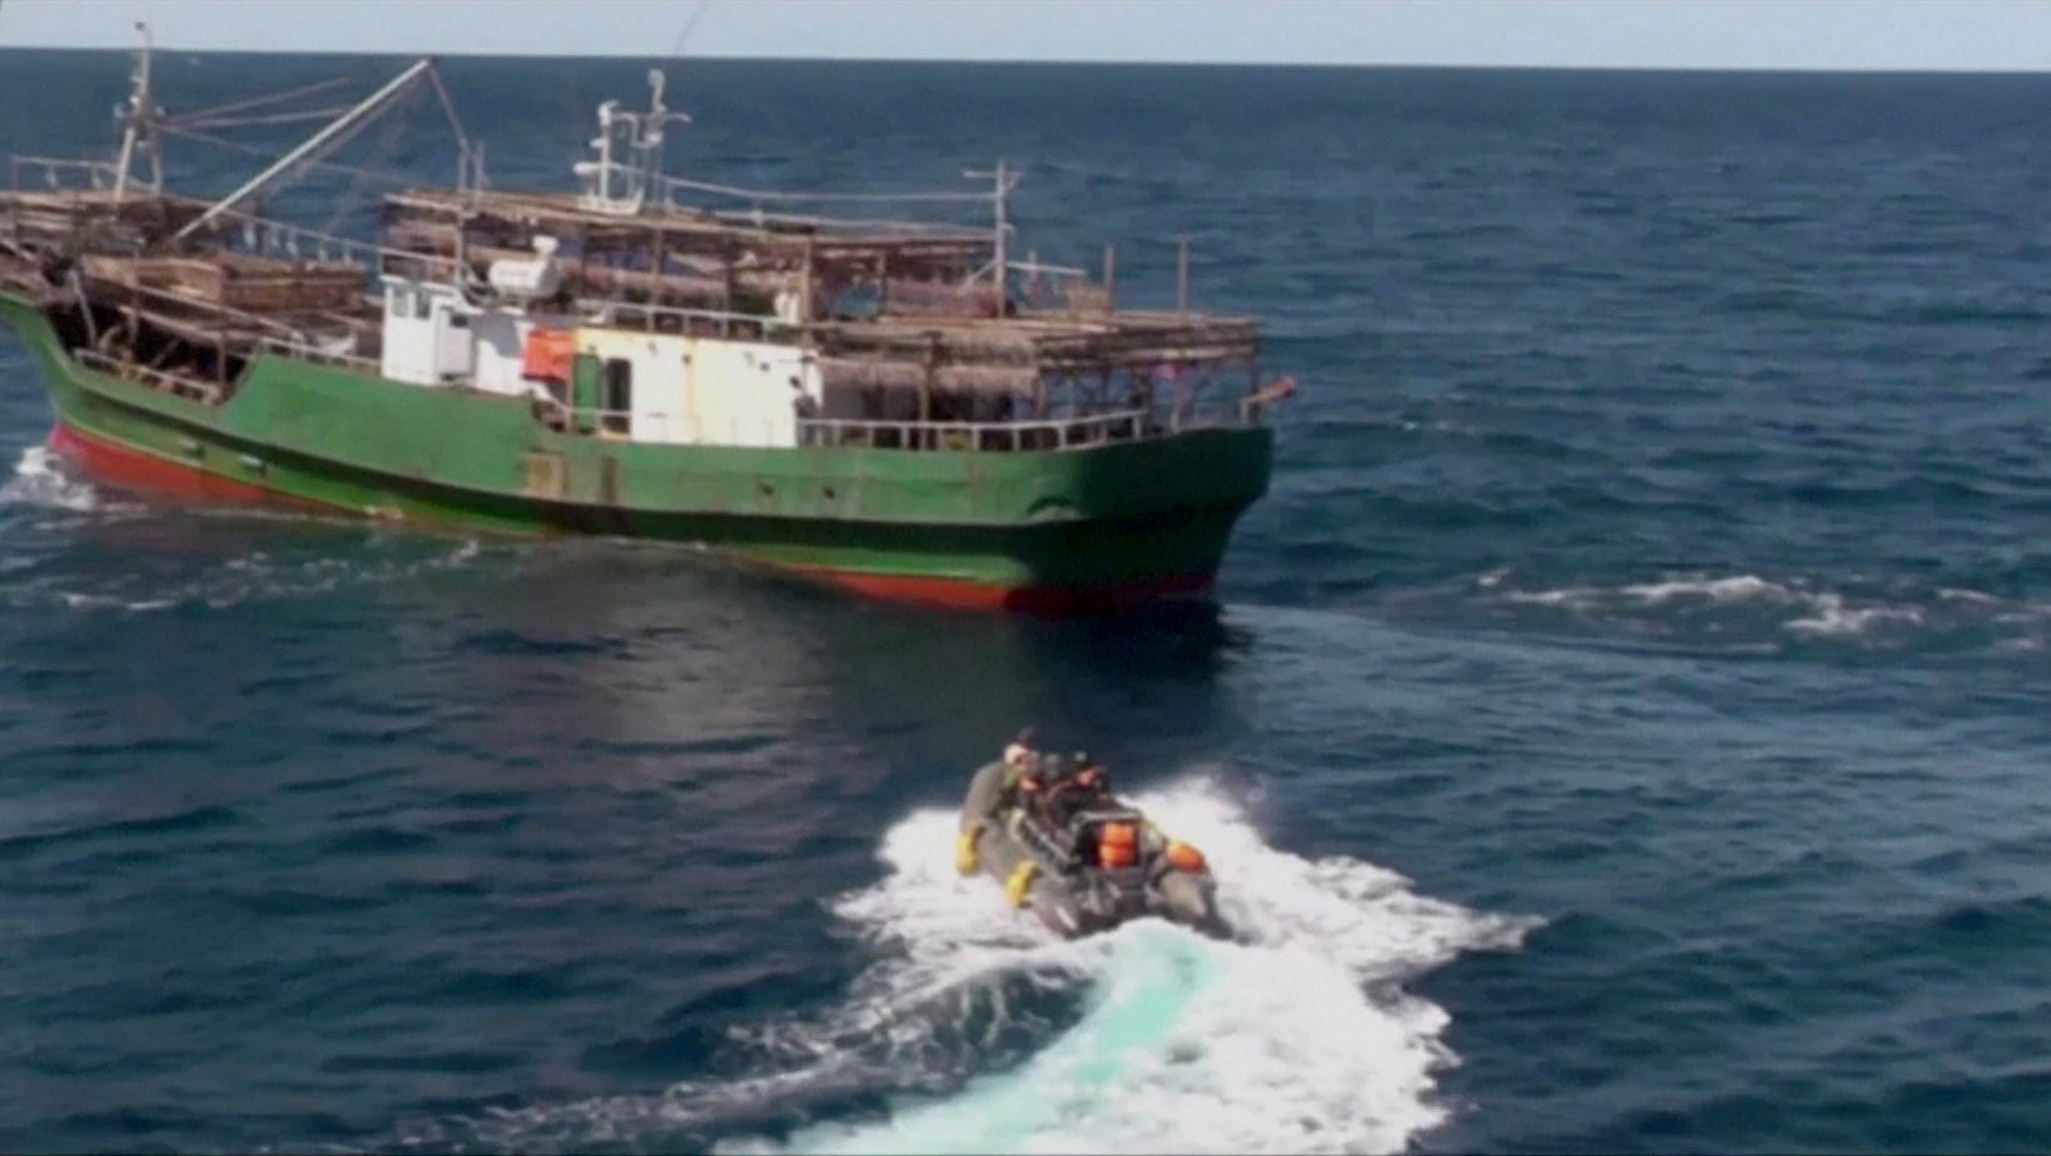 A still image taken from video footage shows a boat with Russian border guards sailing towards a North Korean vessel to detain it and crew members for poaching in waters that Moscow considers its exclusive economic zone, released by Russia's Federal Security Service on September 27, 2019. Federal Security Service/Handout via REUTERS